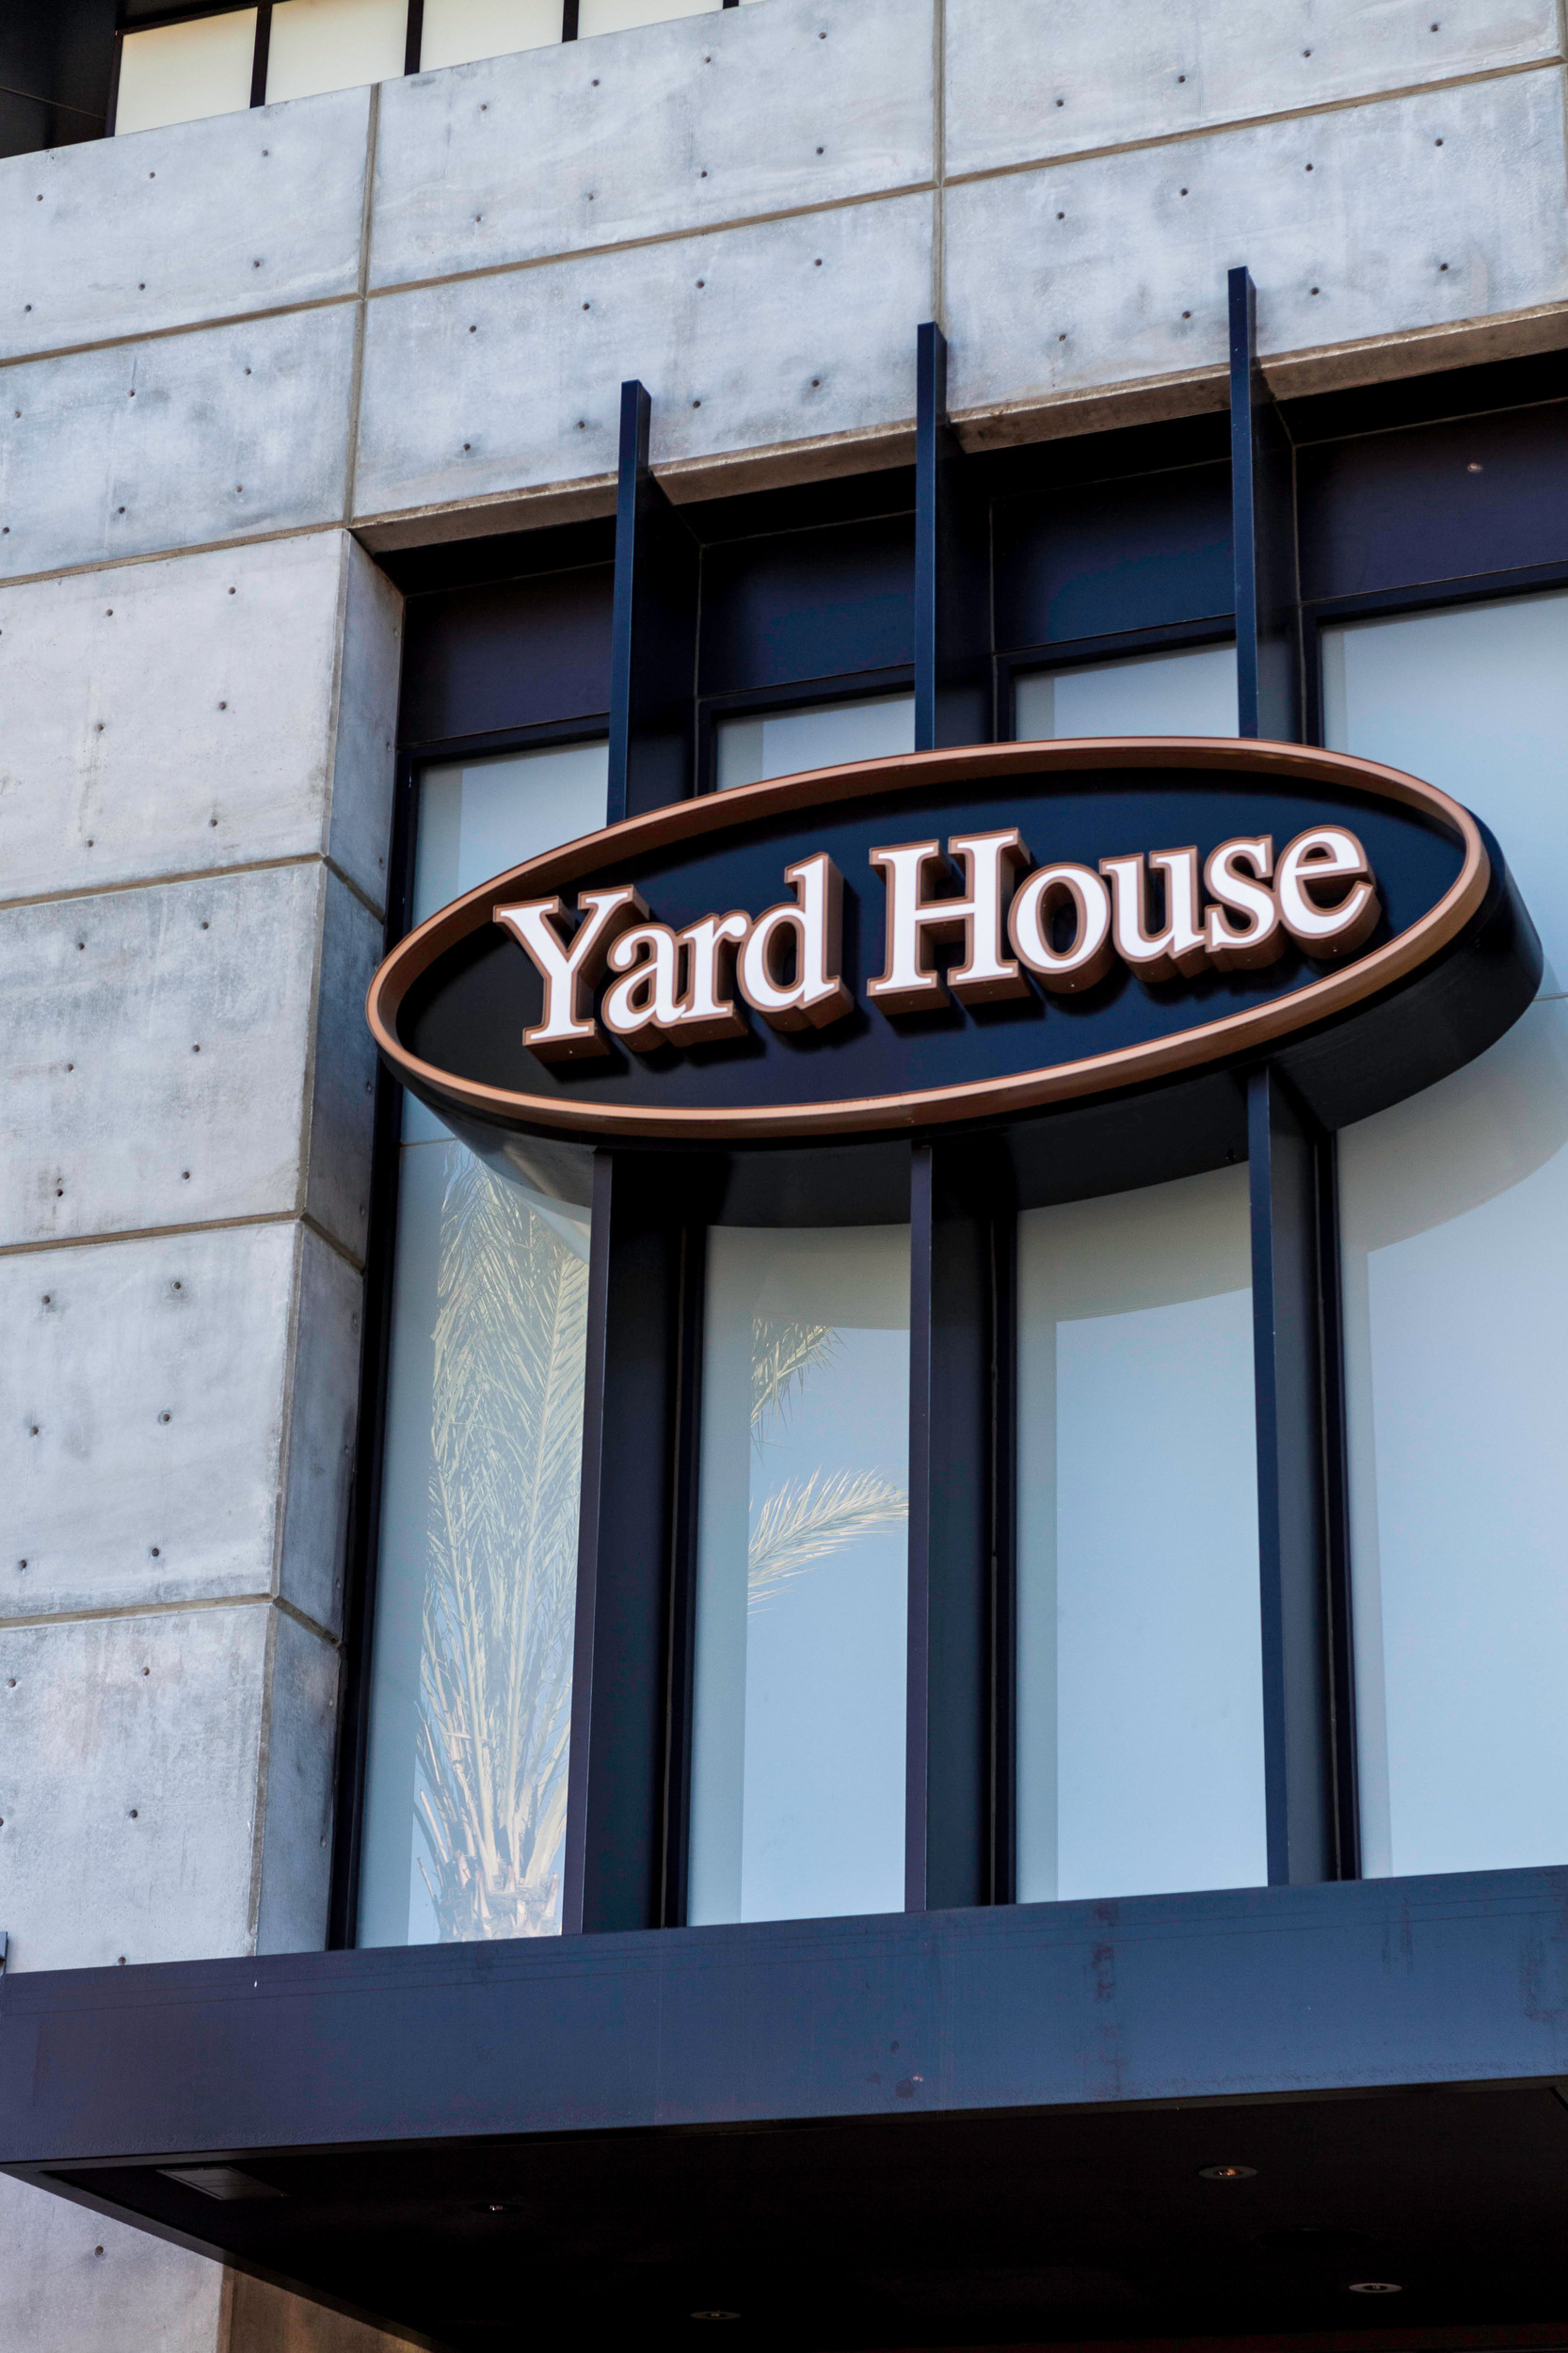 Backyard House Restaurant : Yard House Restaurant in Northridge California